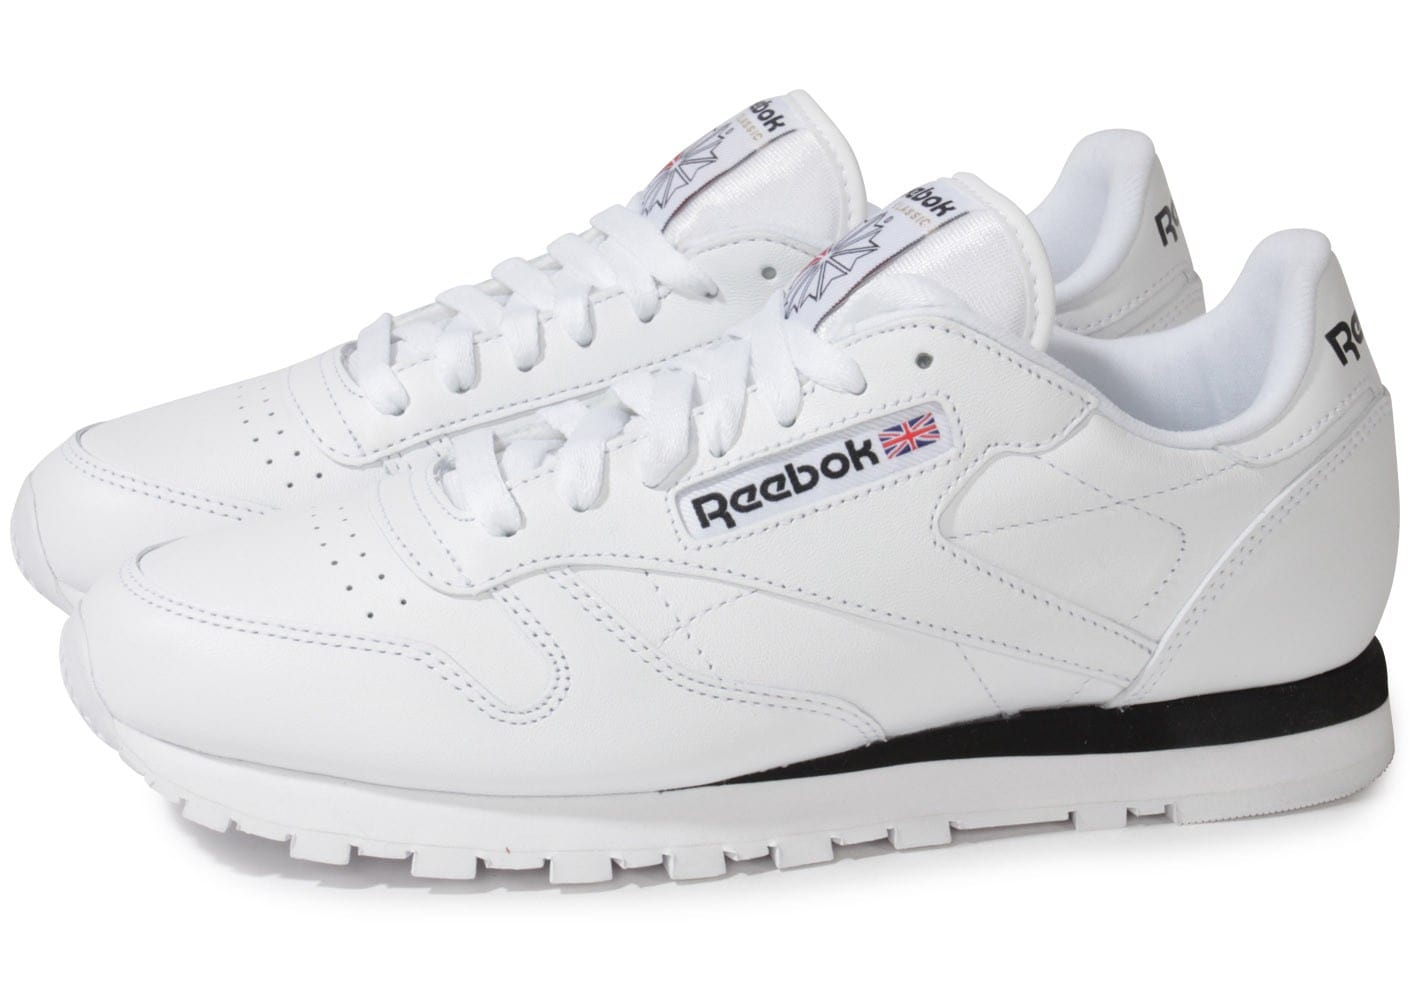 reebok classic leather blanche chaussures homme chausport. Black Bedroom Furniture Sets. Home Design Ideas